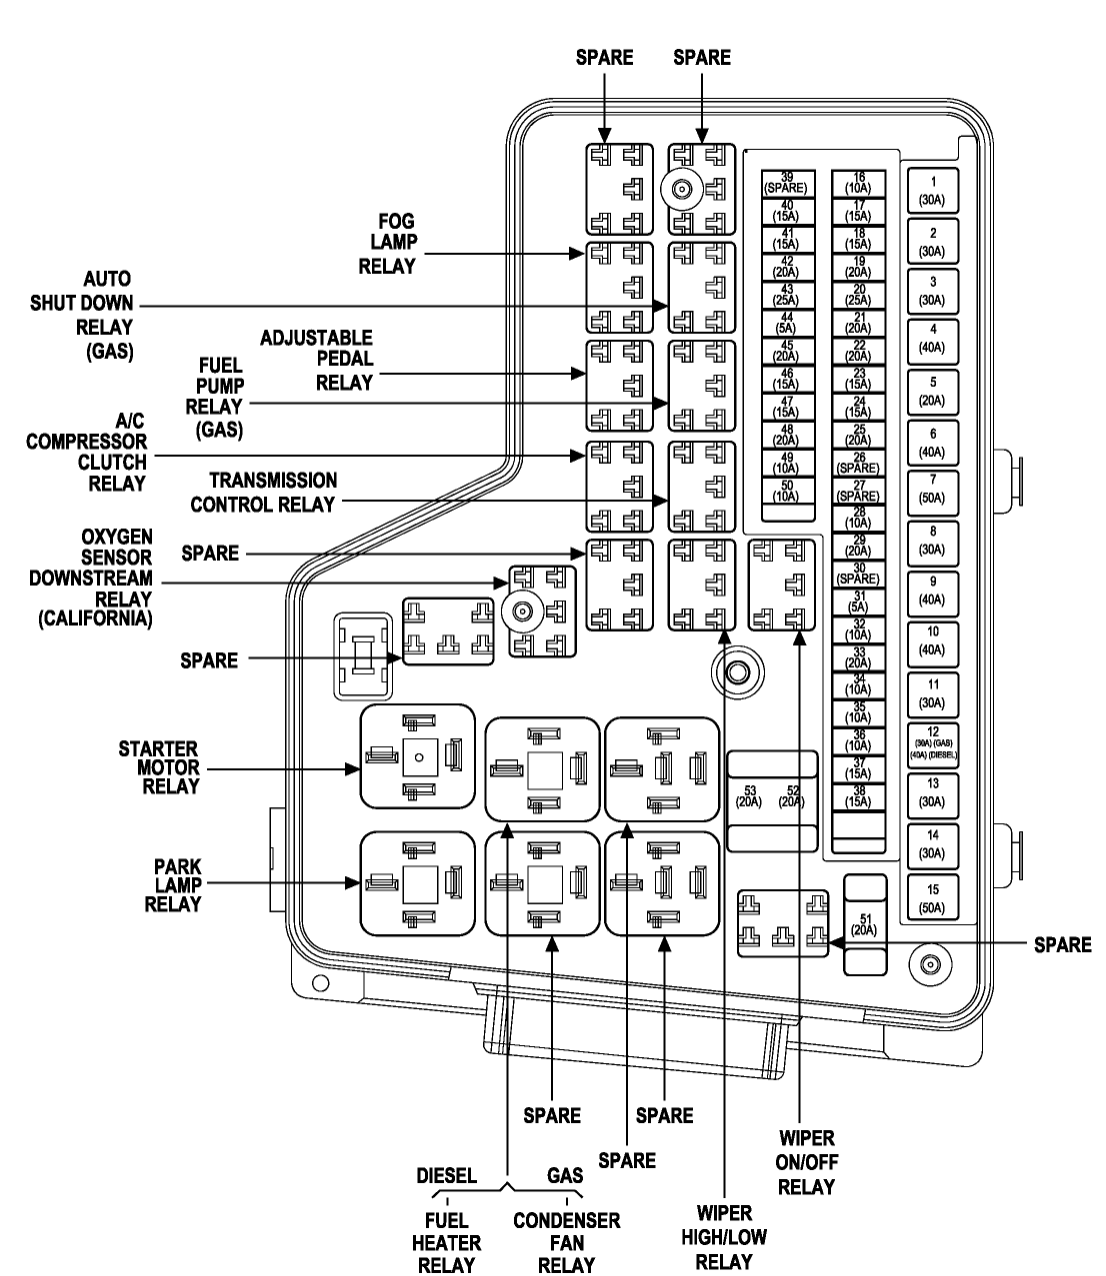 [SCHEMATICS_4LK]  2007 Dodge 1500 Fuse Box Wiring Diagram For 1985 Ford Ranger -  onboard.jambu.astrea-construction.fr | 2007 Ram 3500 Wiring Diagram |  | Begeboy Wiring Diagram Source - ASTREA CONSTRUCTION